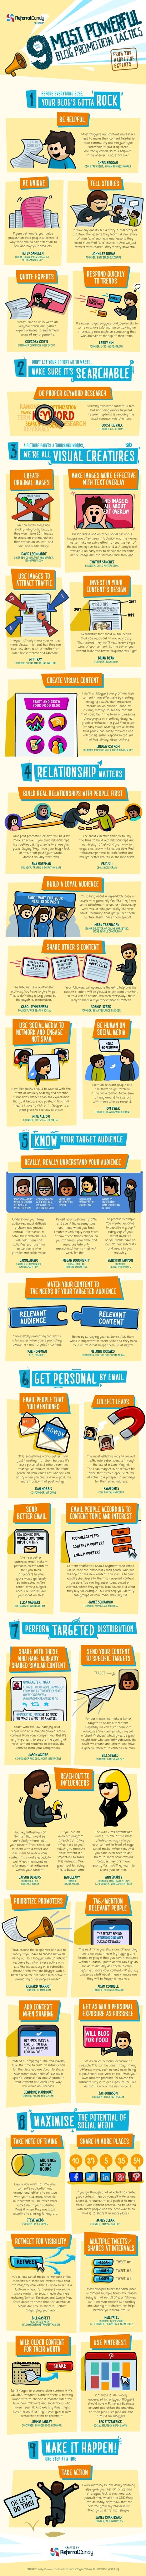 How to Promote Your Stories Effectively #Infographic | The Perfect Storm Team | Scoop.it